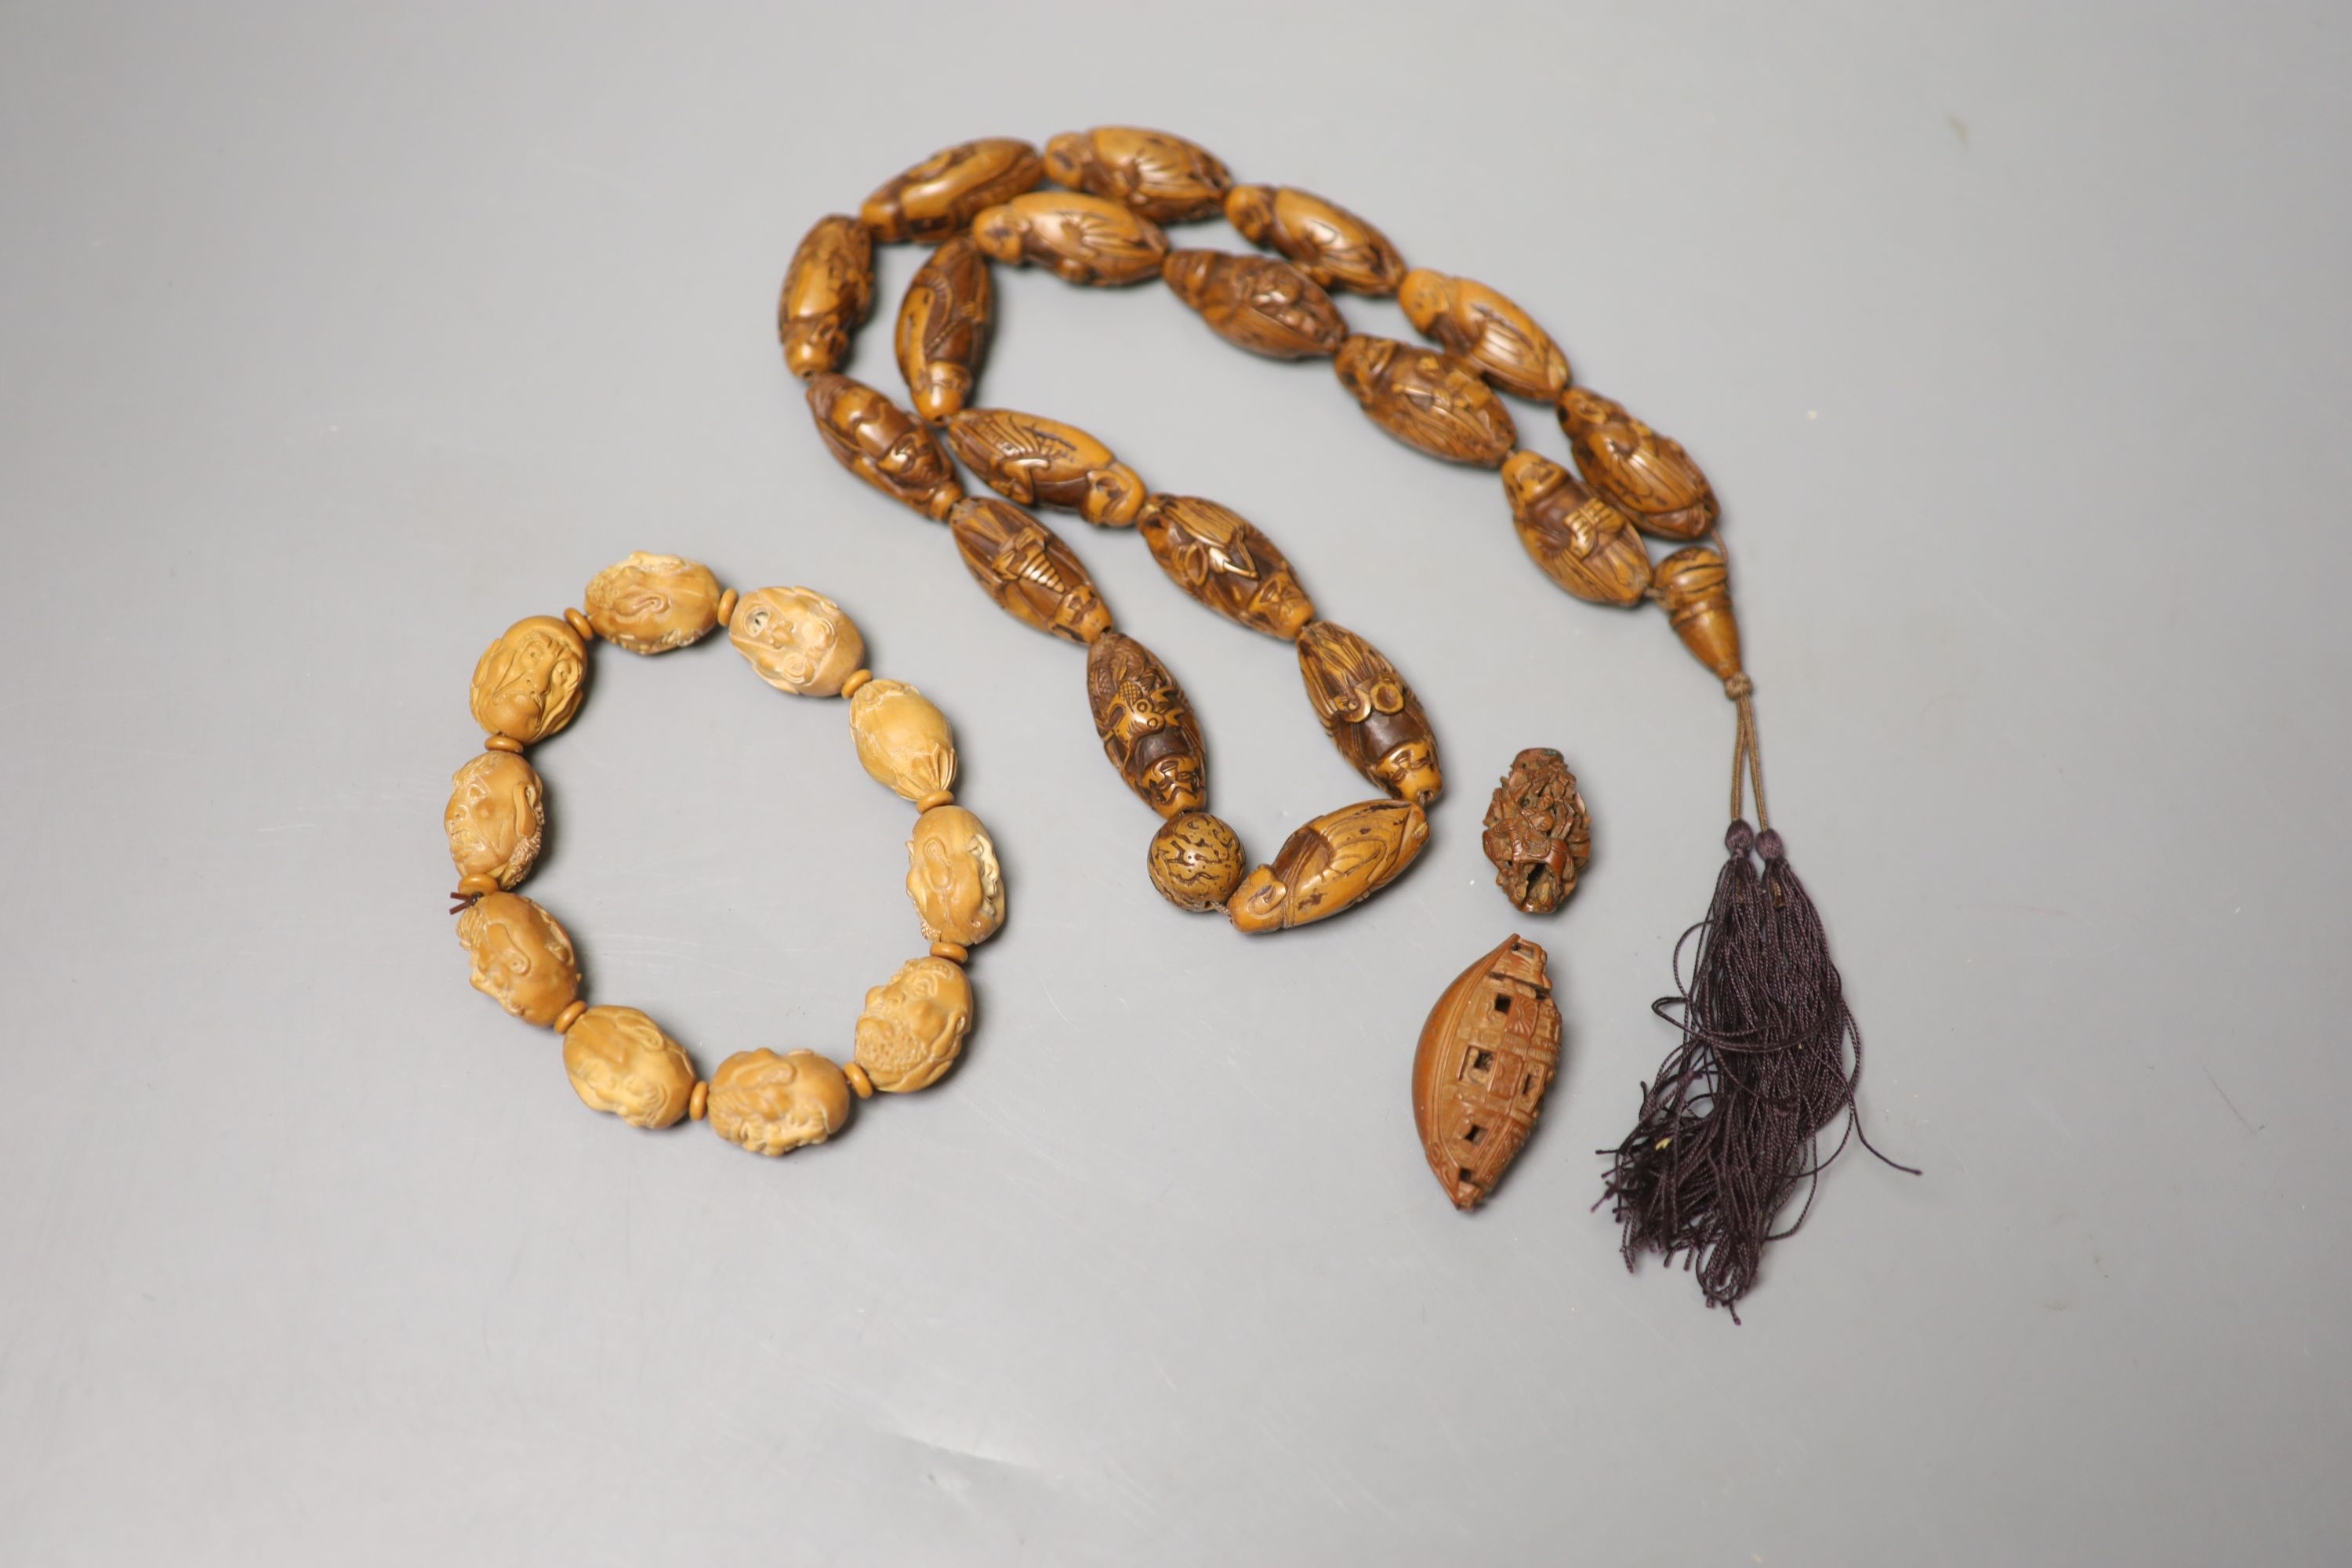 A coquilla nut necklace, bracelet and two small ornamental carvings